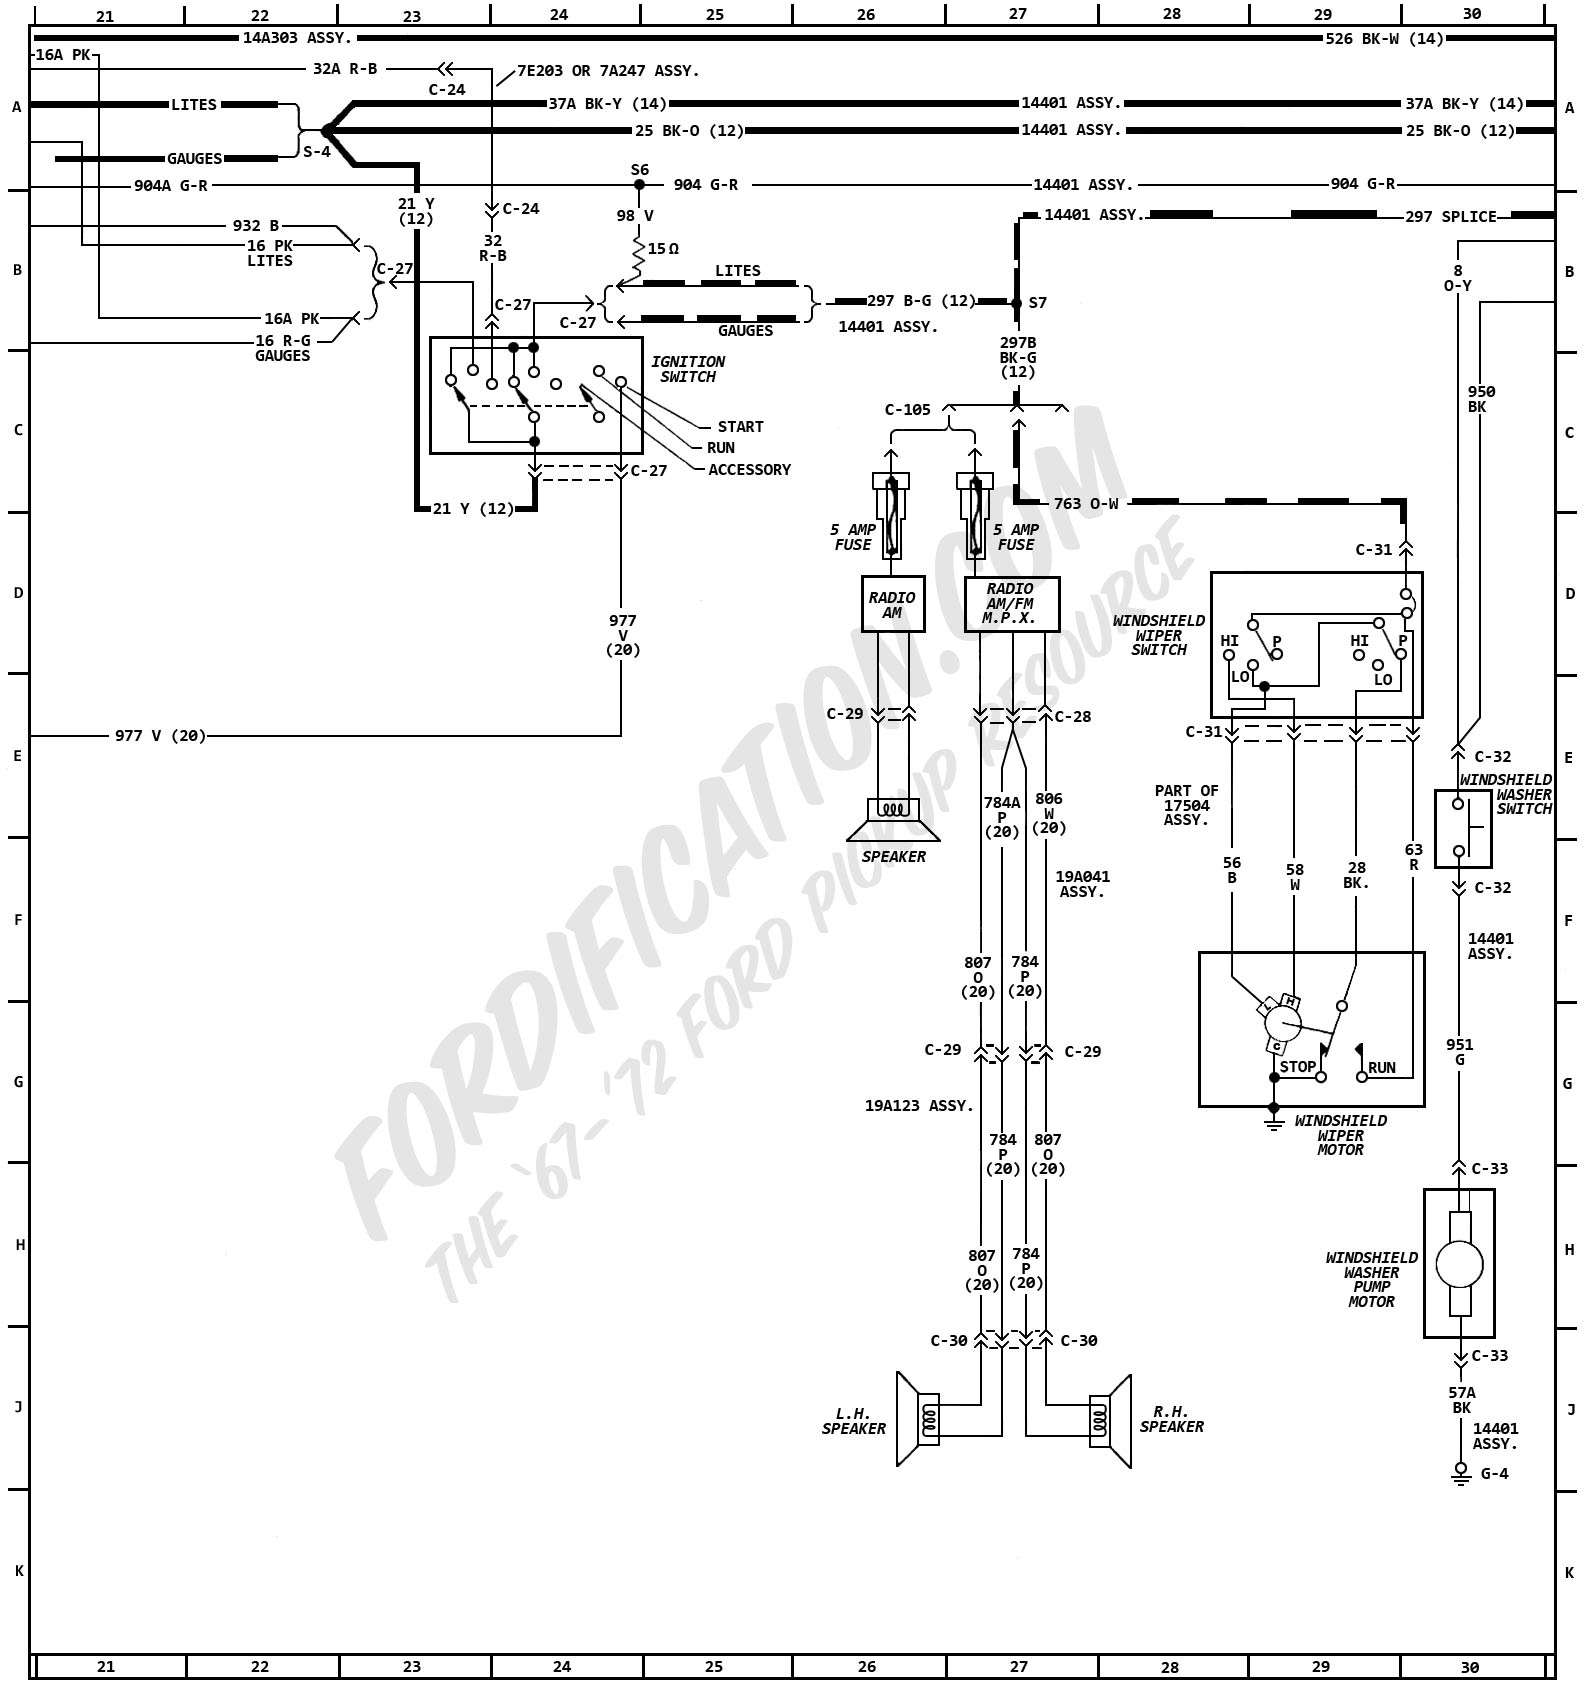 1972 ford f 250 wiper switch wiring diagram    wiring       diagram    for    ford    l8000     wiring       diagram    for    ford    l8000